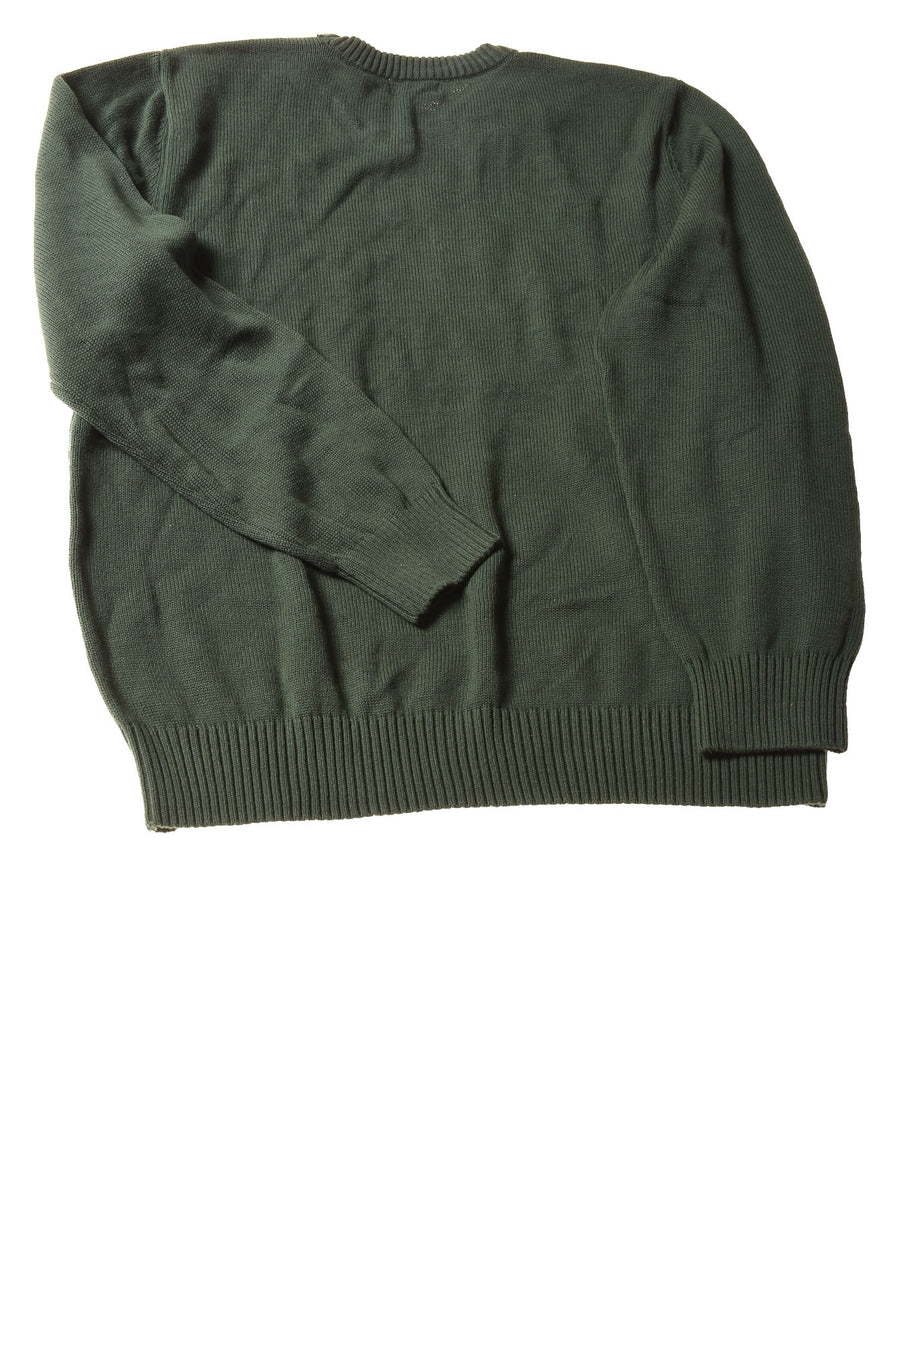 Men's Sweater By Dockers